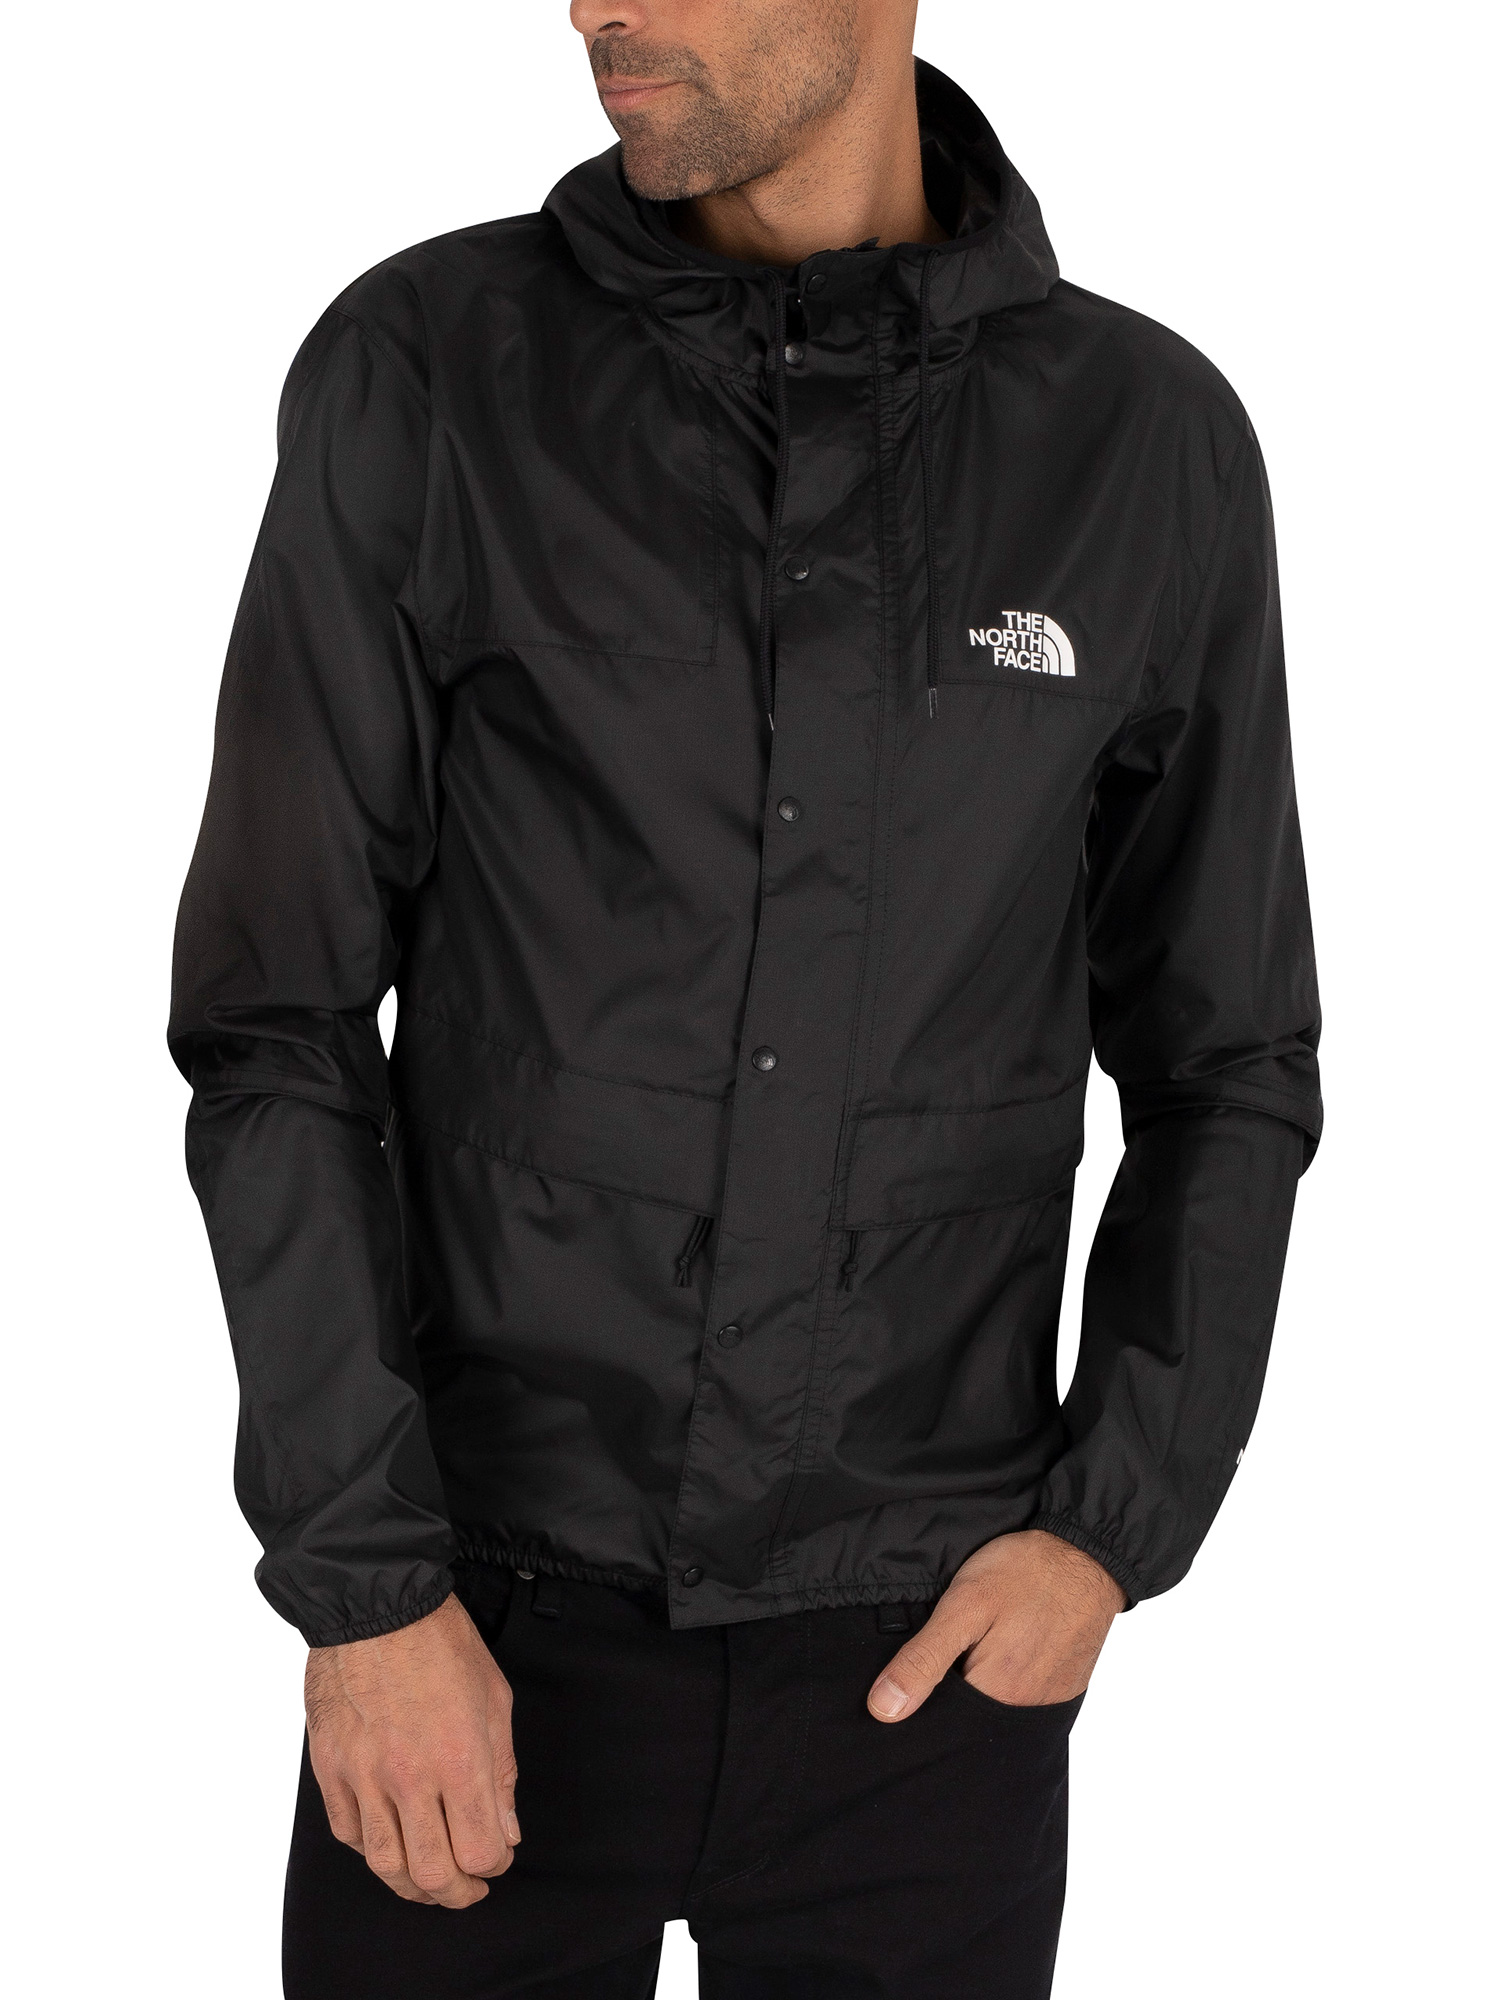 The North Face 1985 Mountain Jacket - Black/White